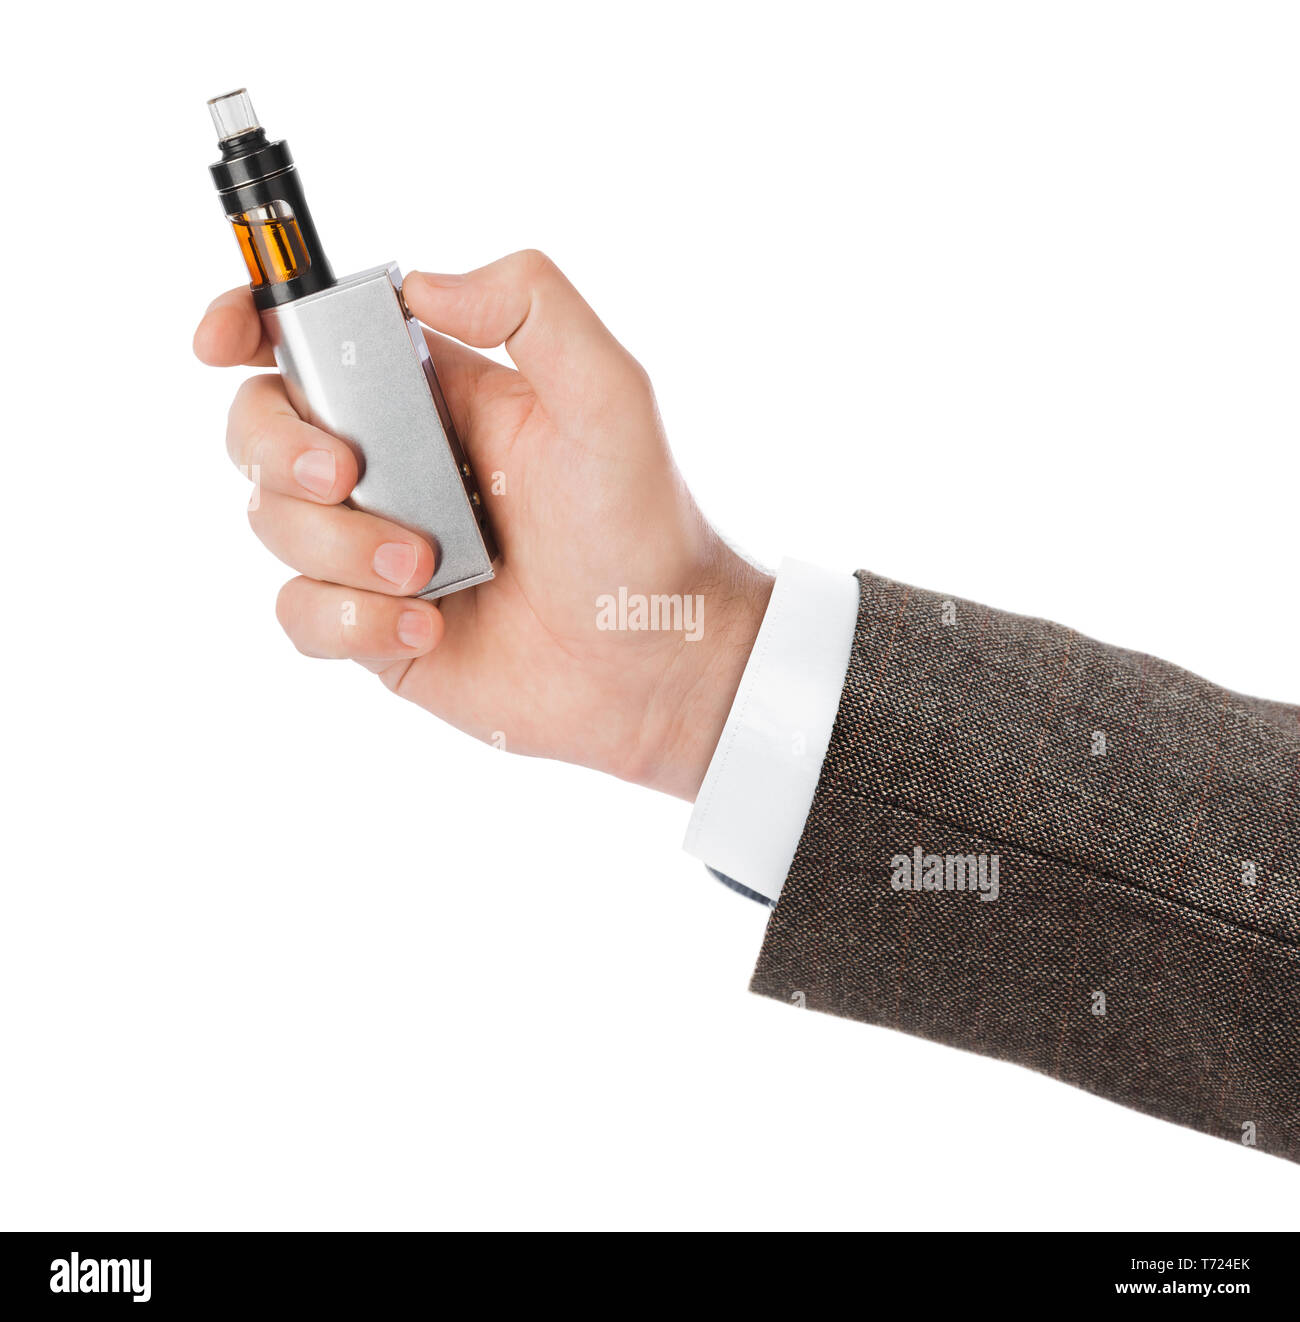 Hand with vape device for smoking - Stock Image